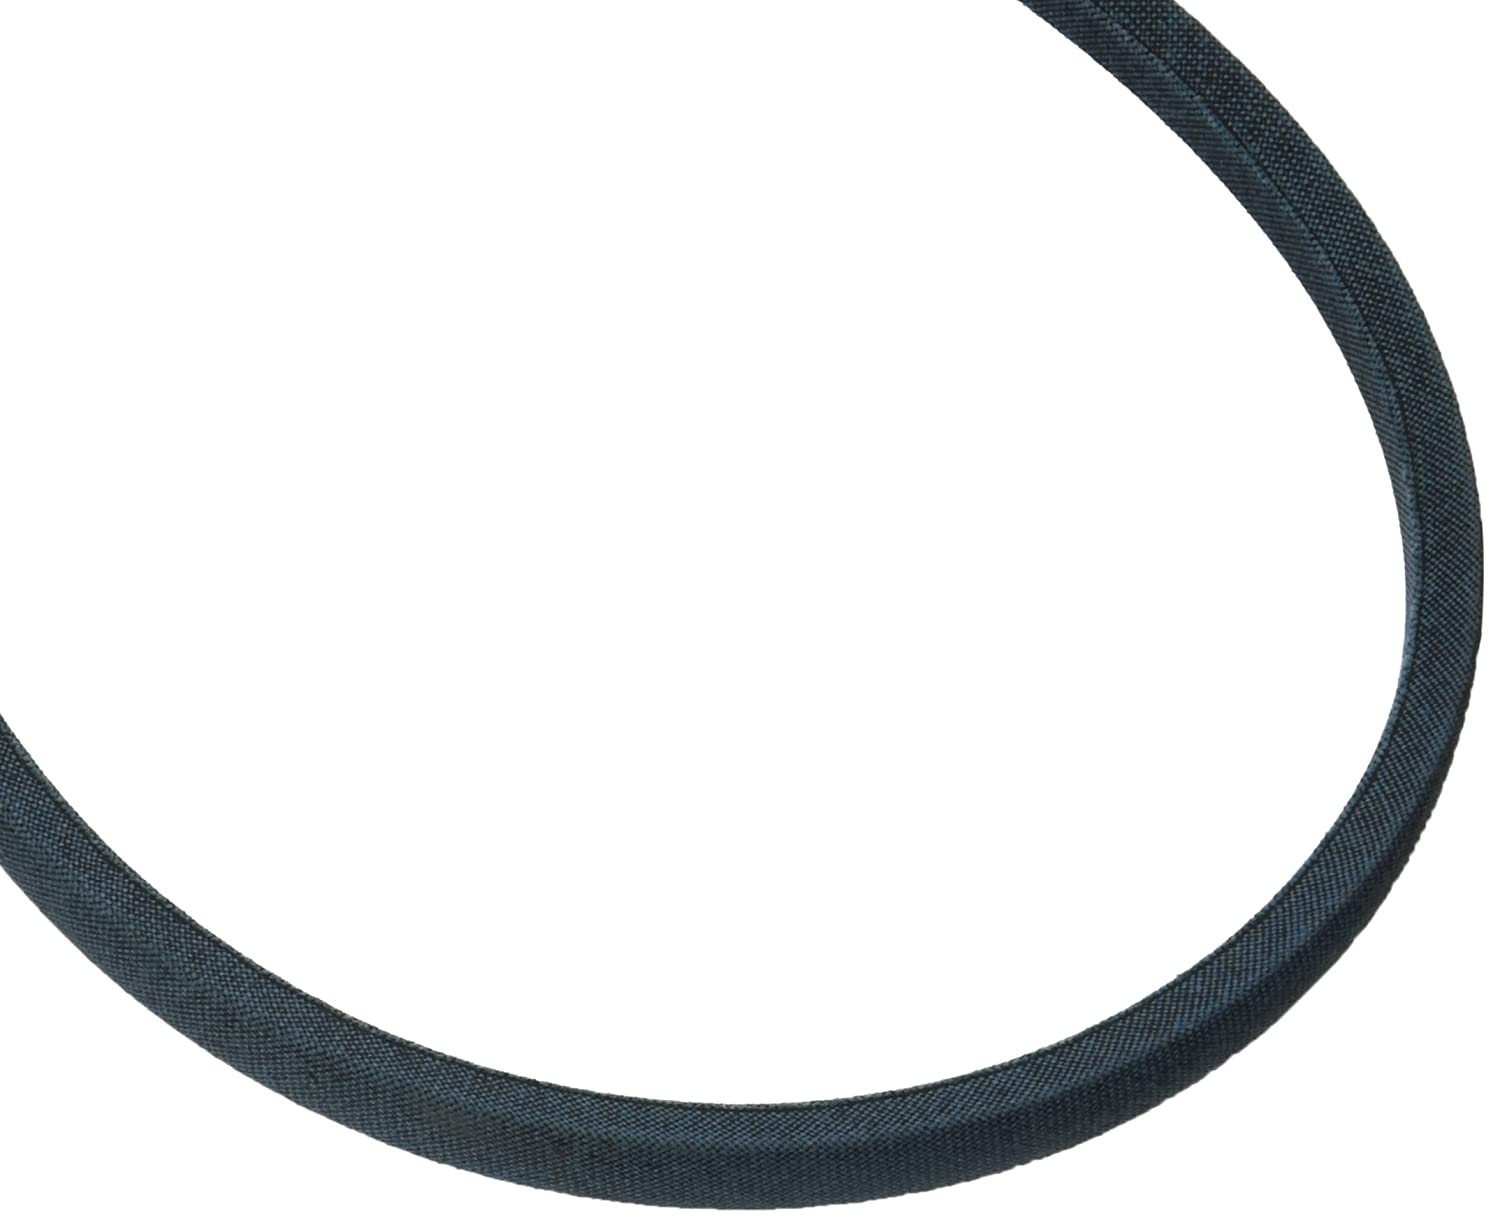 Jason Industrial MXV4-950 Super Duty Lawn and Garden Belt, Synthetic Rubber, 95.0